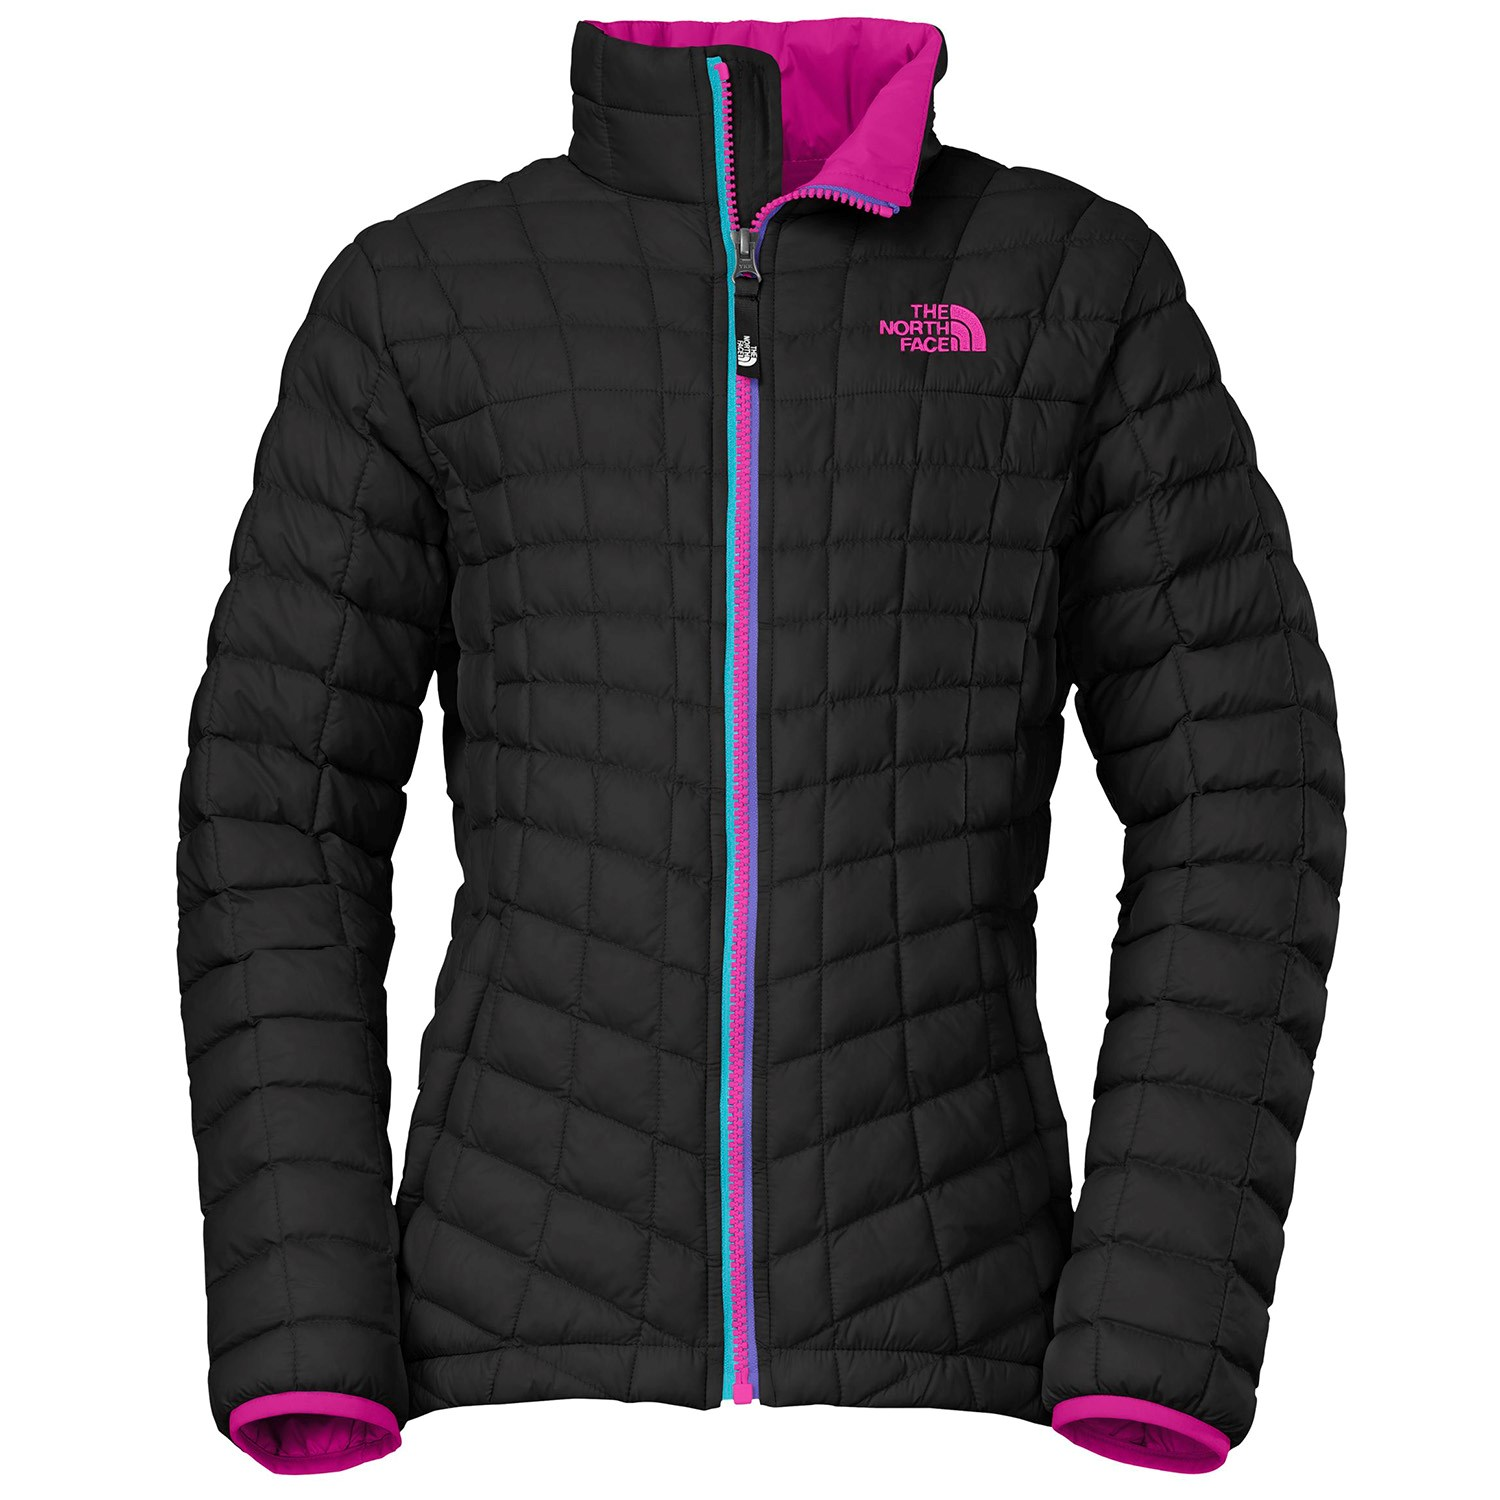 ce02e7423ce3 The North Face ThermoBall Full Zip Jacket - Girls